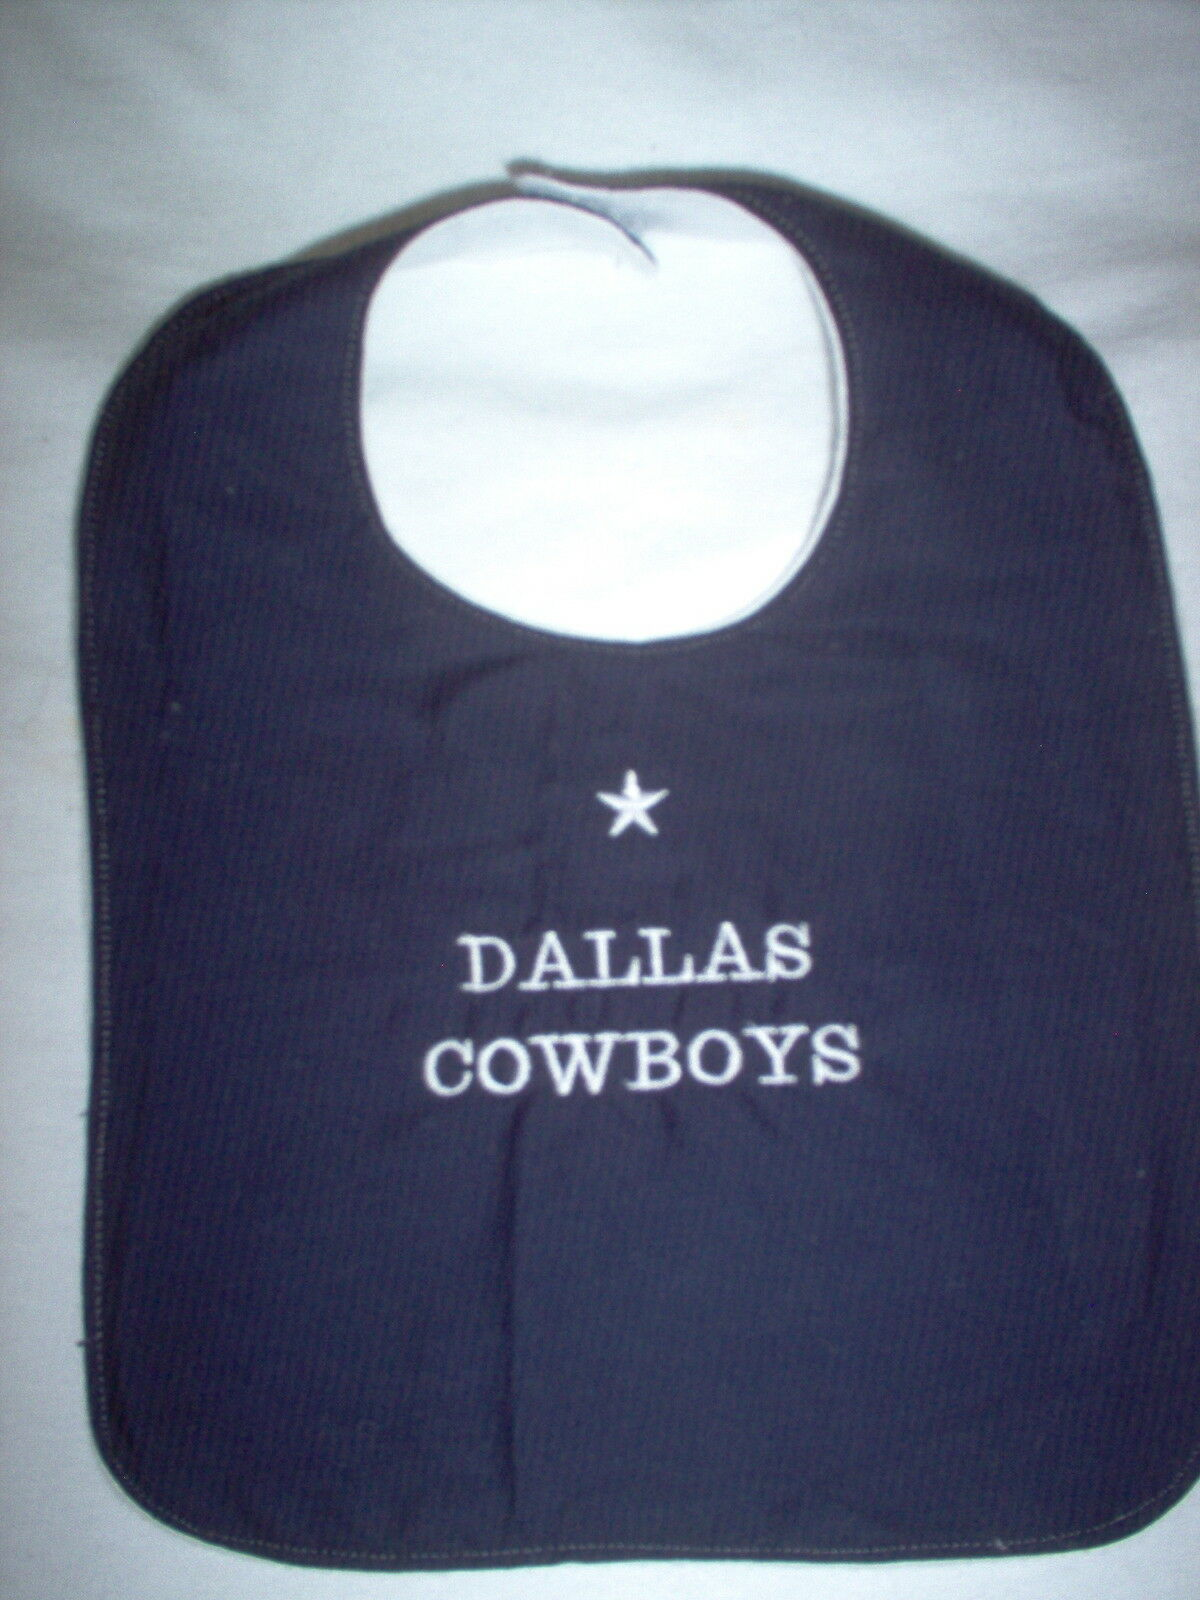 Dallas Cowboys Baby Bib 275 Picclick Nuby 3d Silicone Dress 1 Of 1only 4 Available